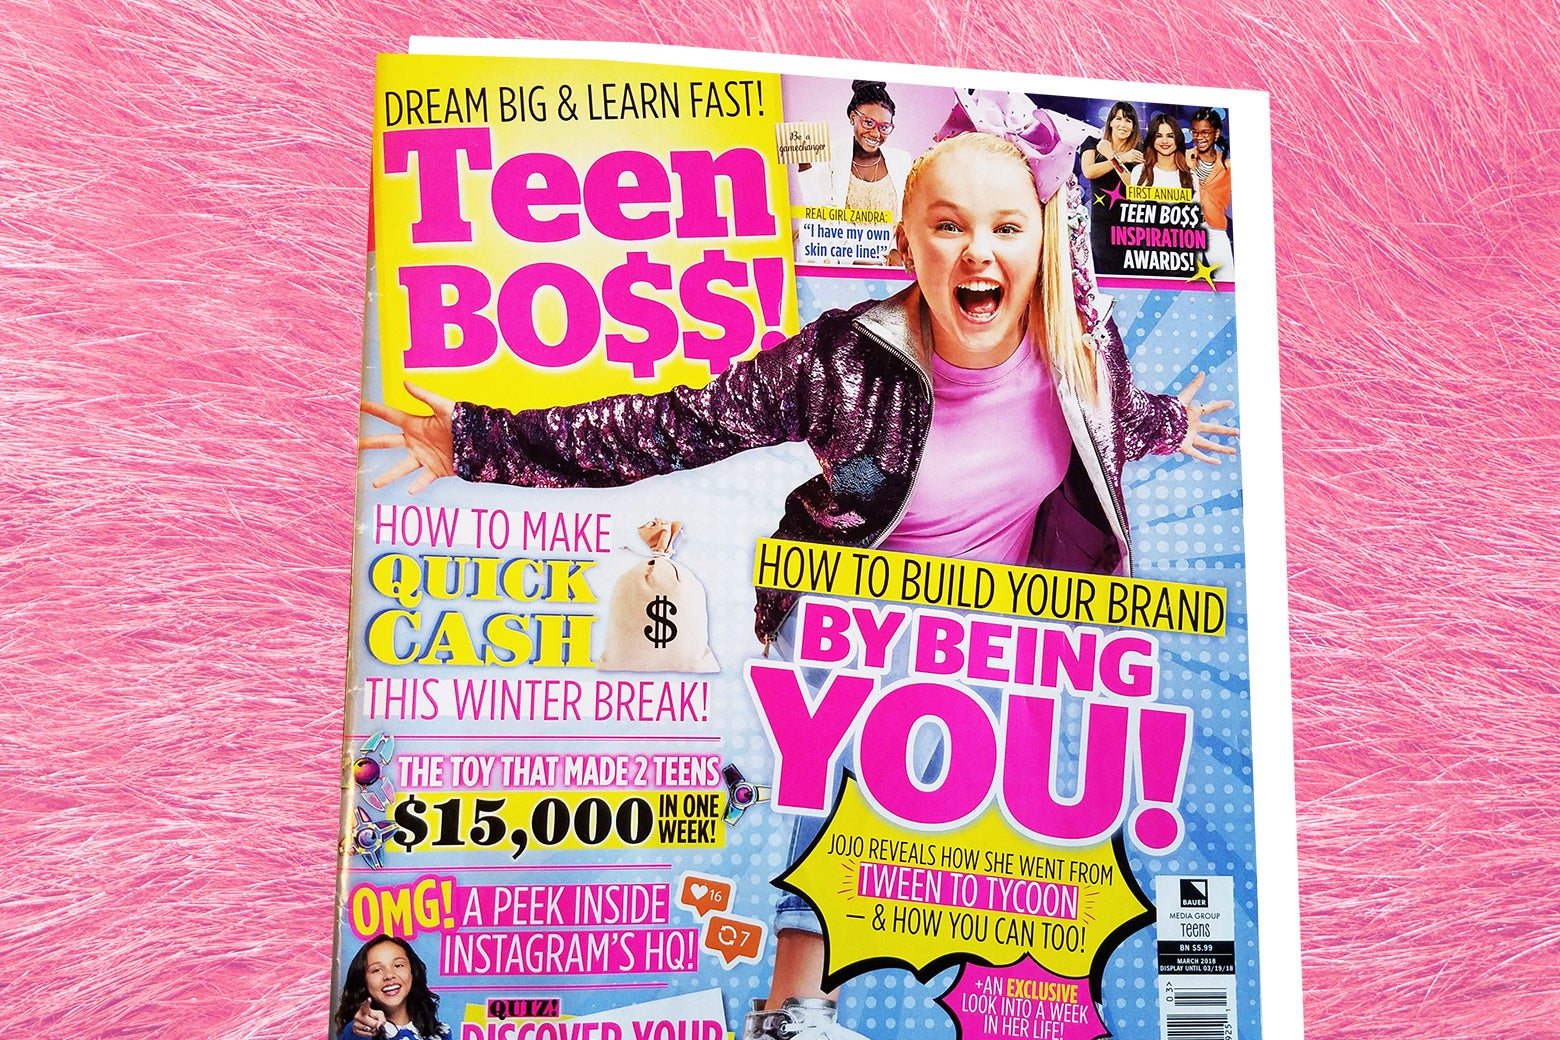 Teen Boss magazine with JoJo Siwa on the cover.